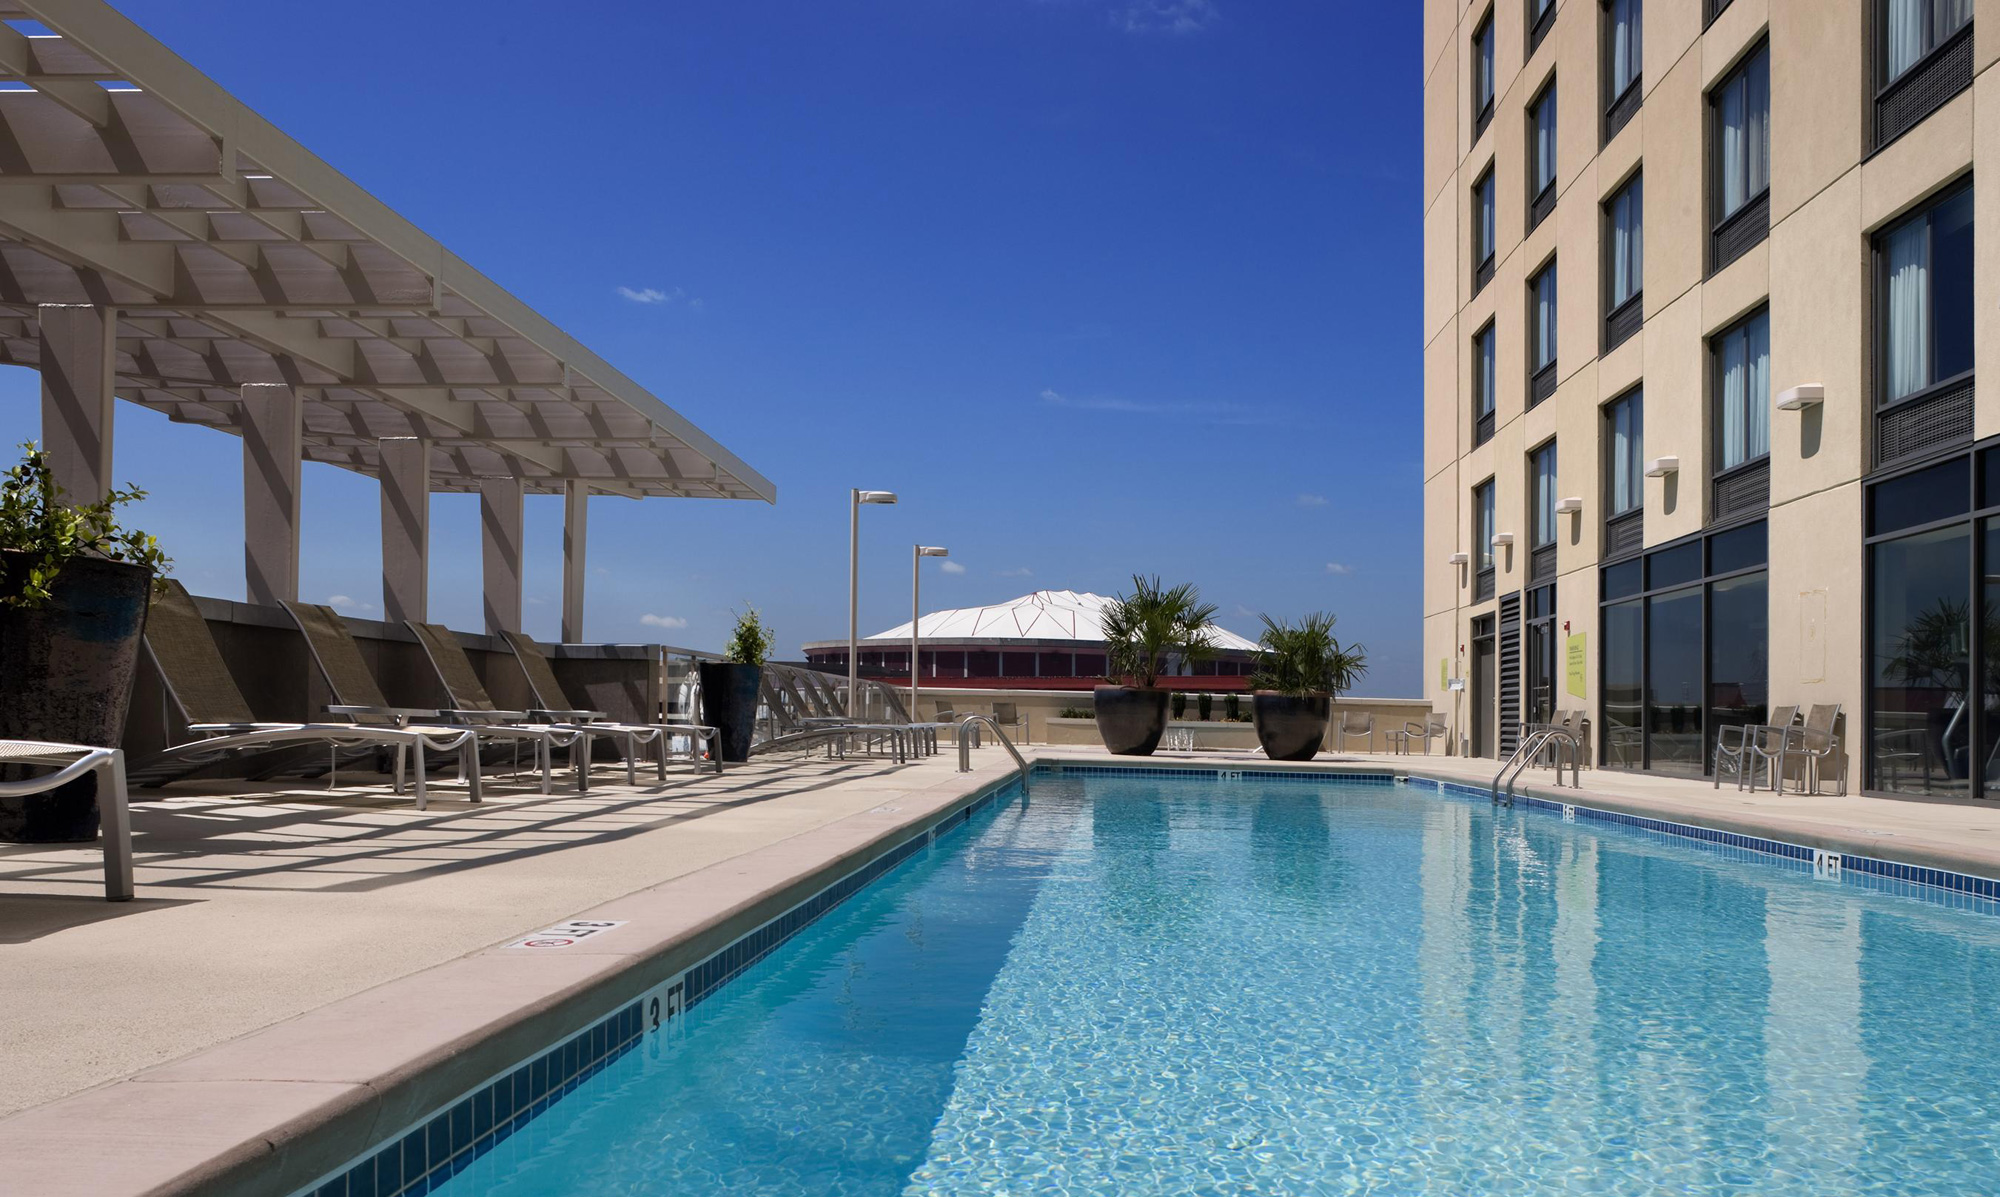 Rooftop pool at the Hilton Garden Inn Atlanta Downtown